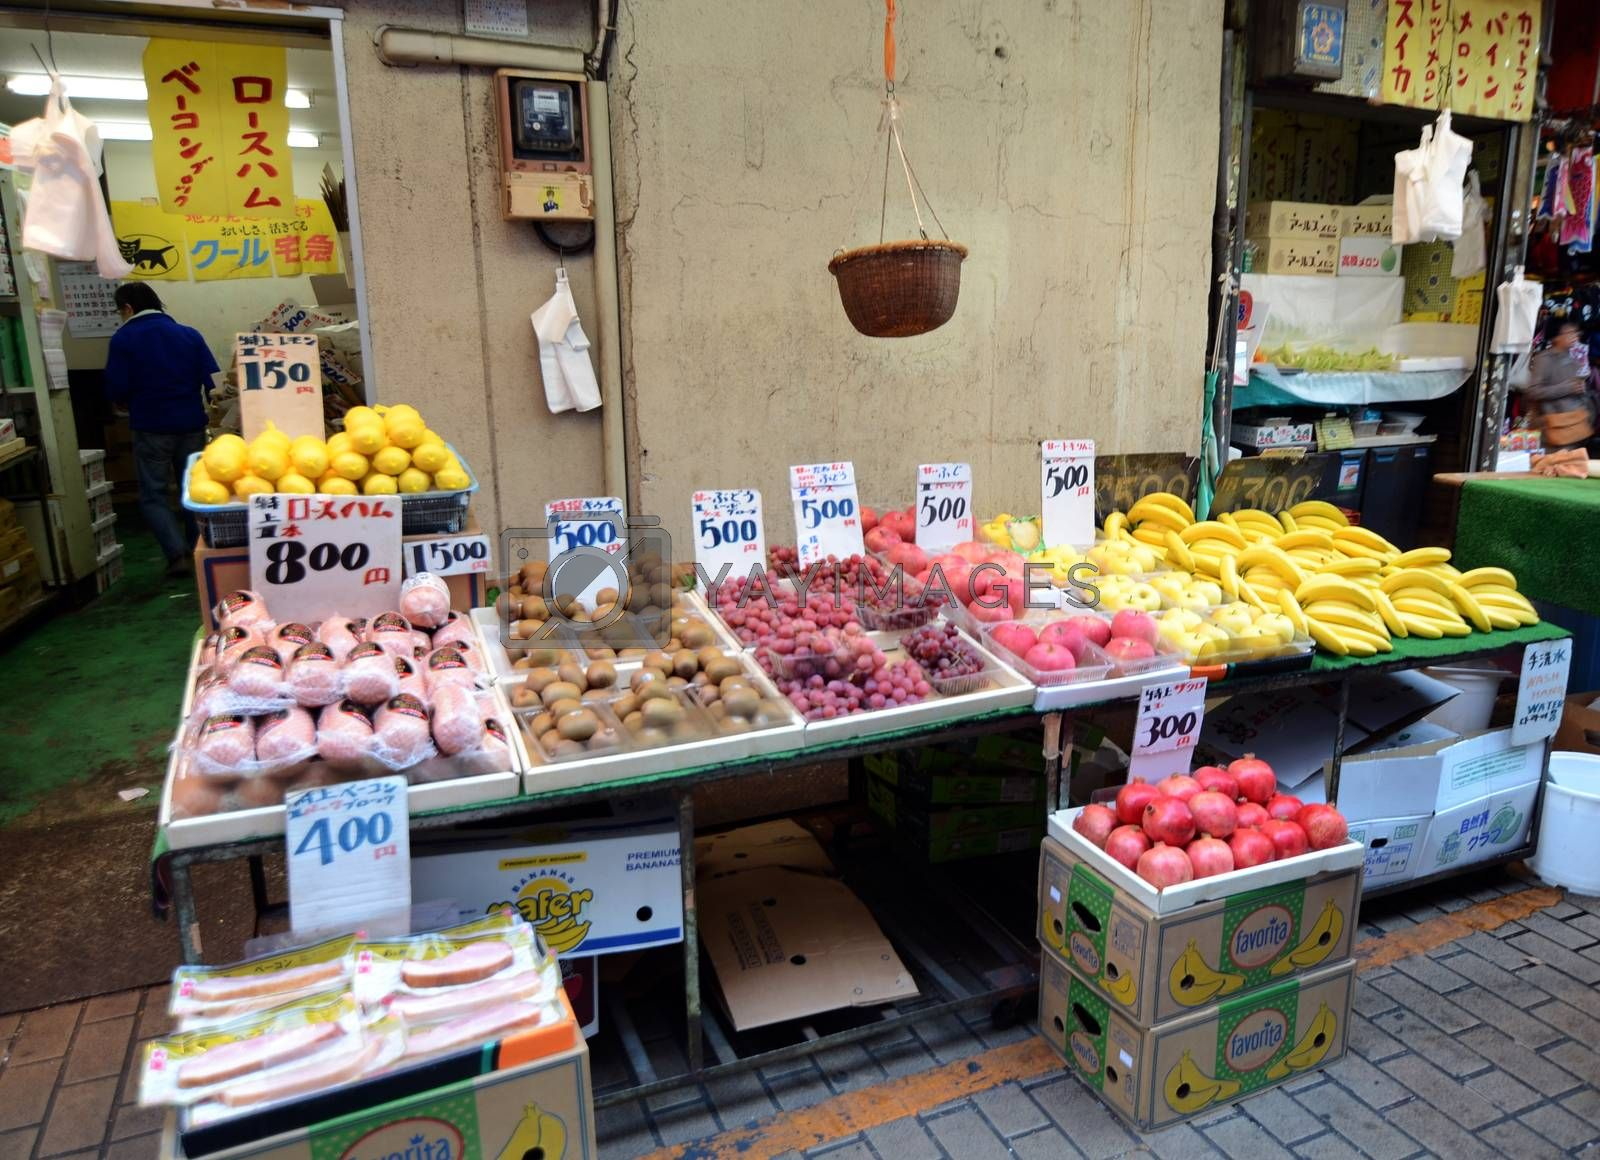 TOKYO, JAPAN- NOVEMBER 22, 2013: Ameyoko is market street,which sell various products, fruit, dried food and spices. Market located in Taito Ward of Tokyo, Japan, November 22 2013